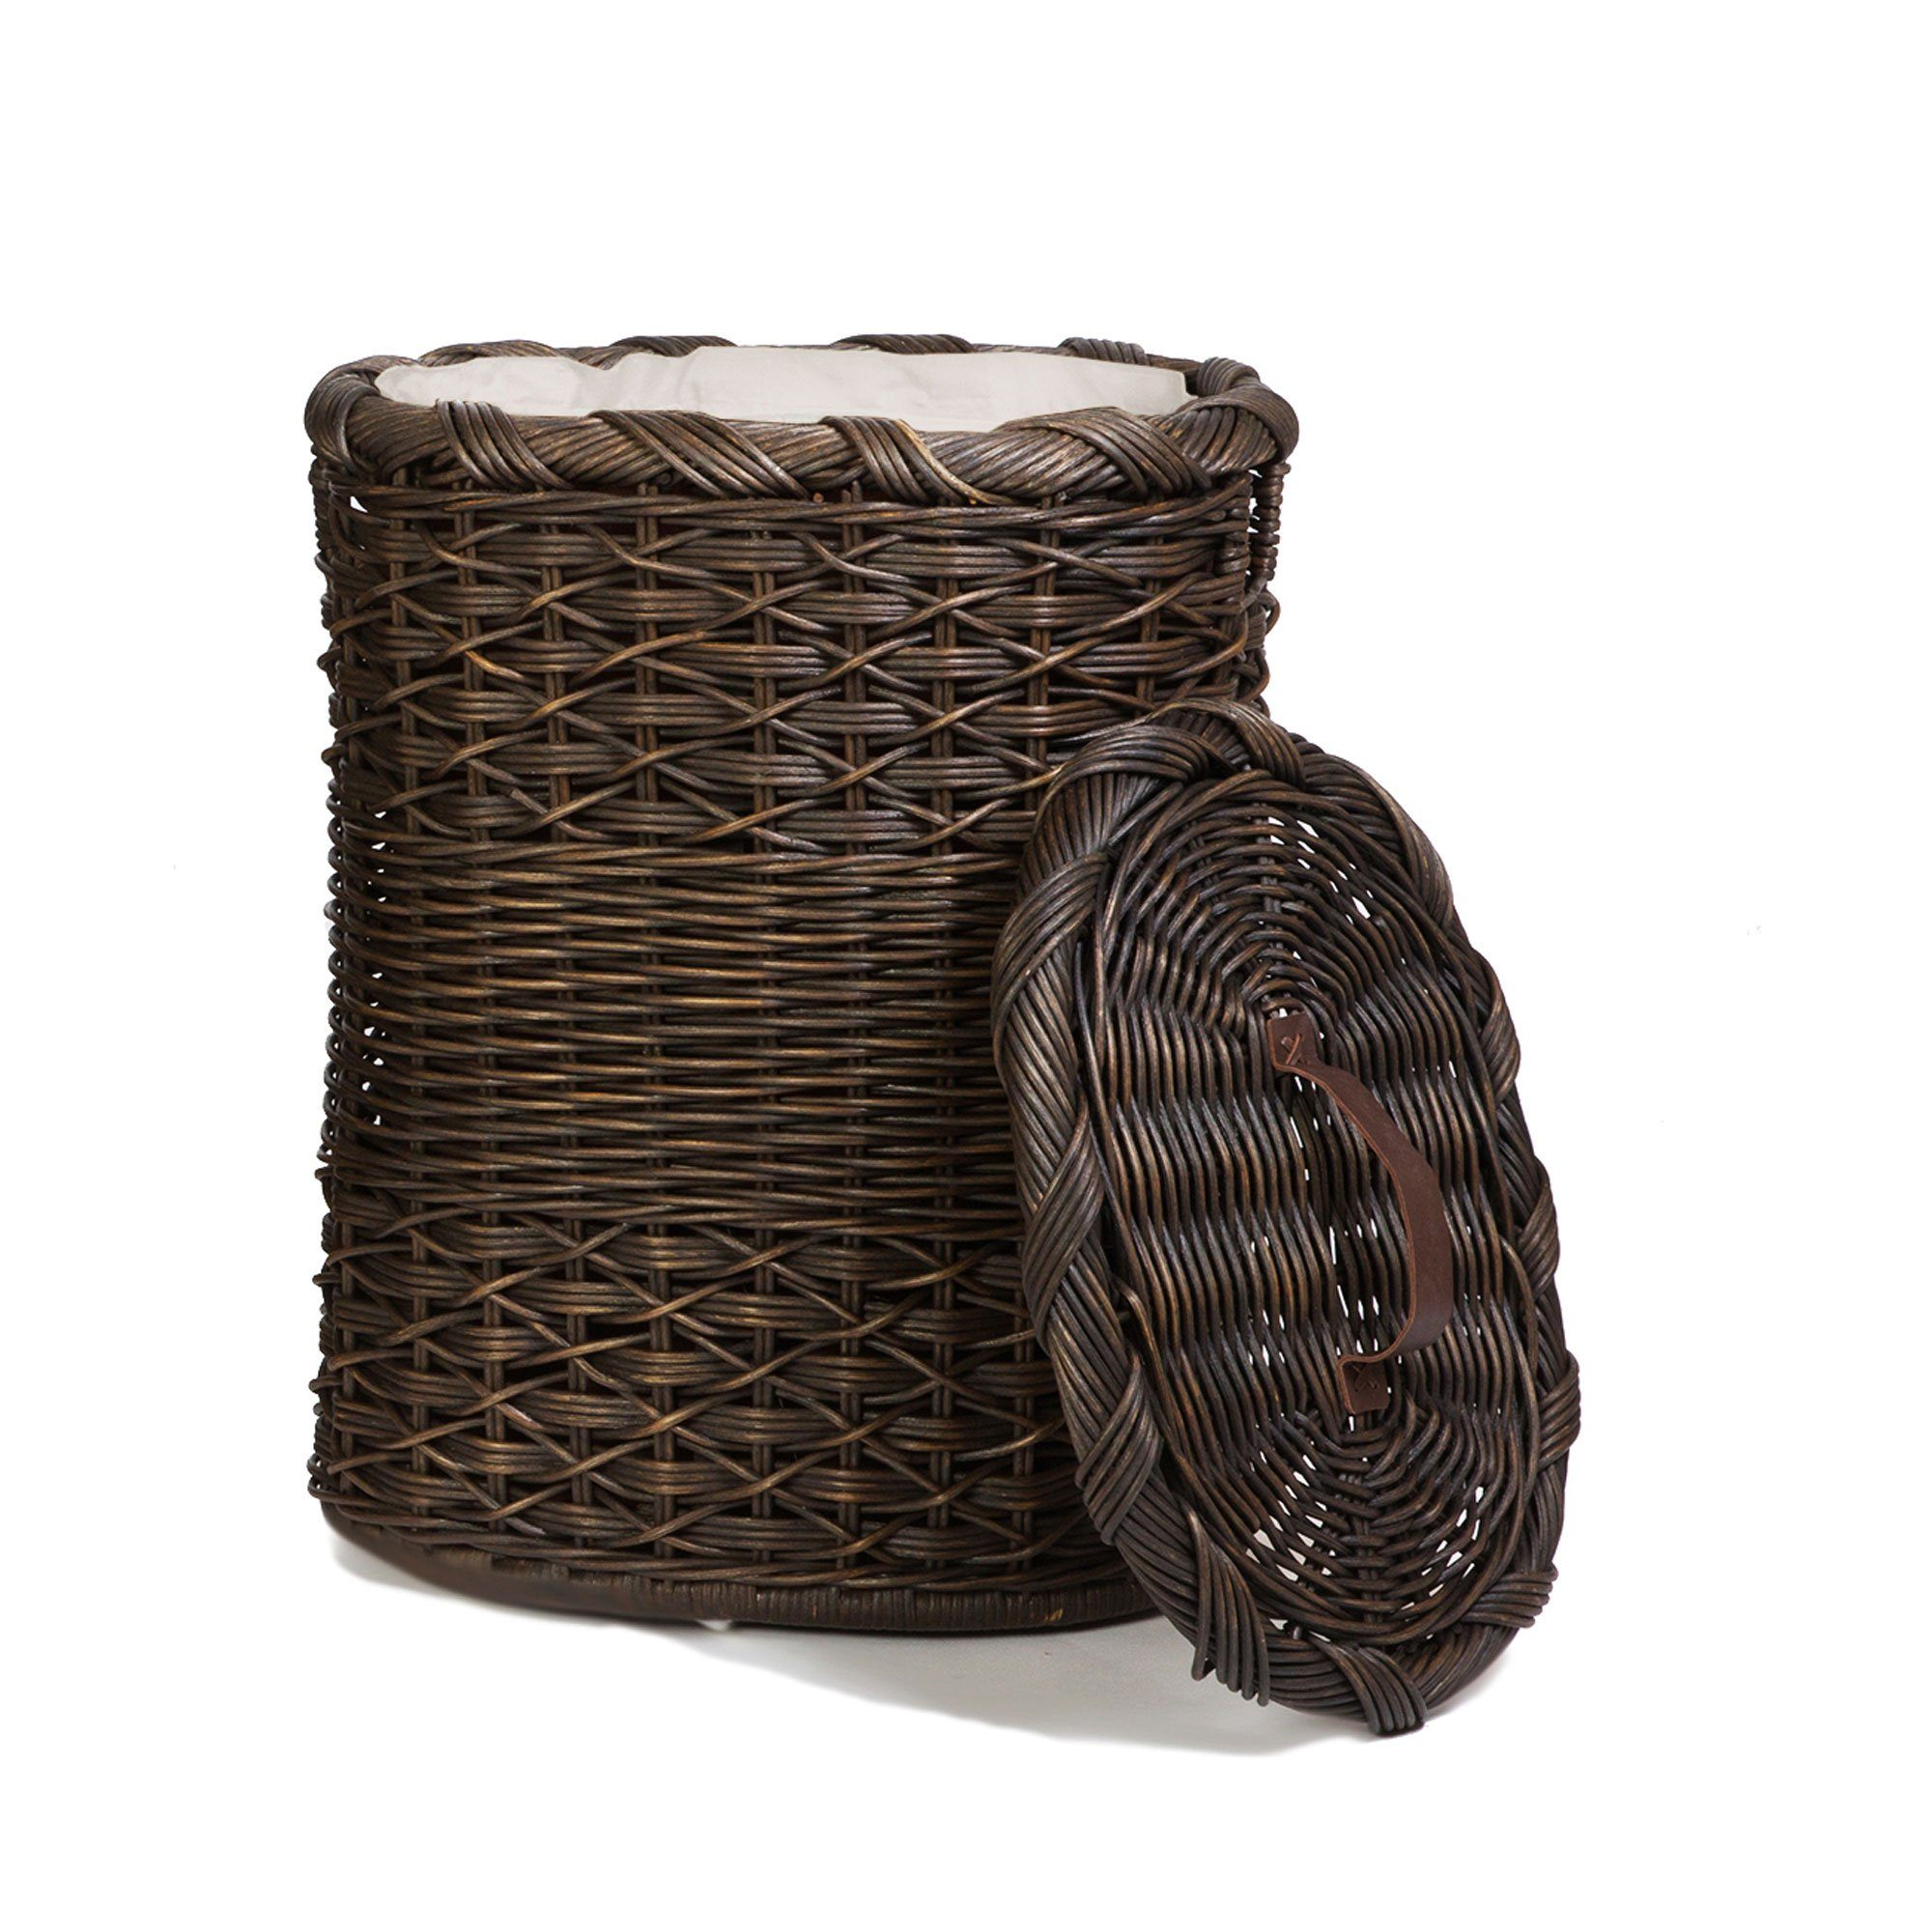 Oval wicker laundry hamper the basket lady - Rattan laundry hamper ...